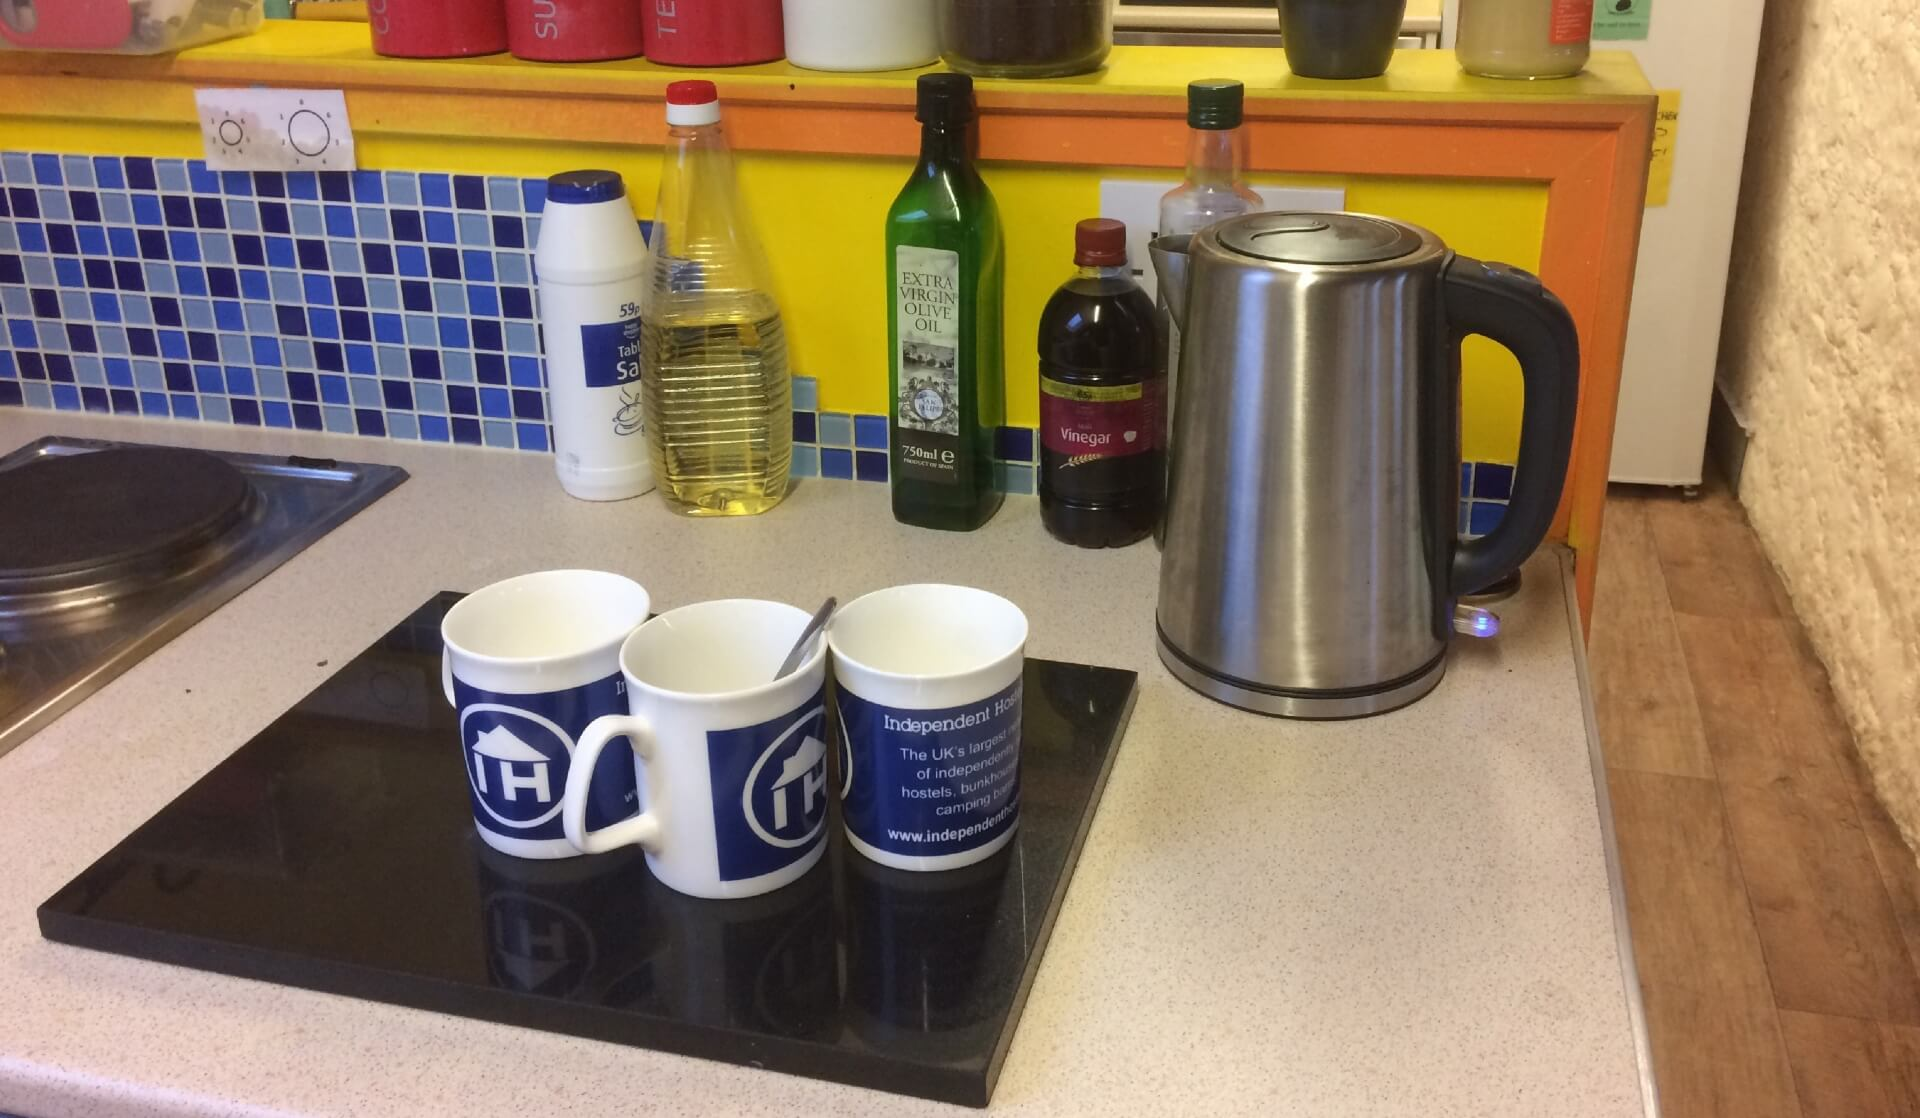 Self catering facilities at a Welsh hostel